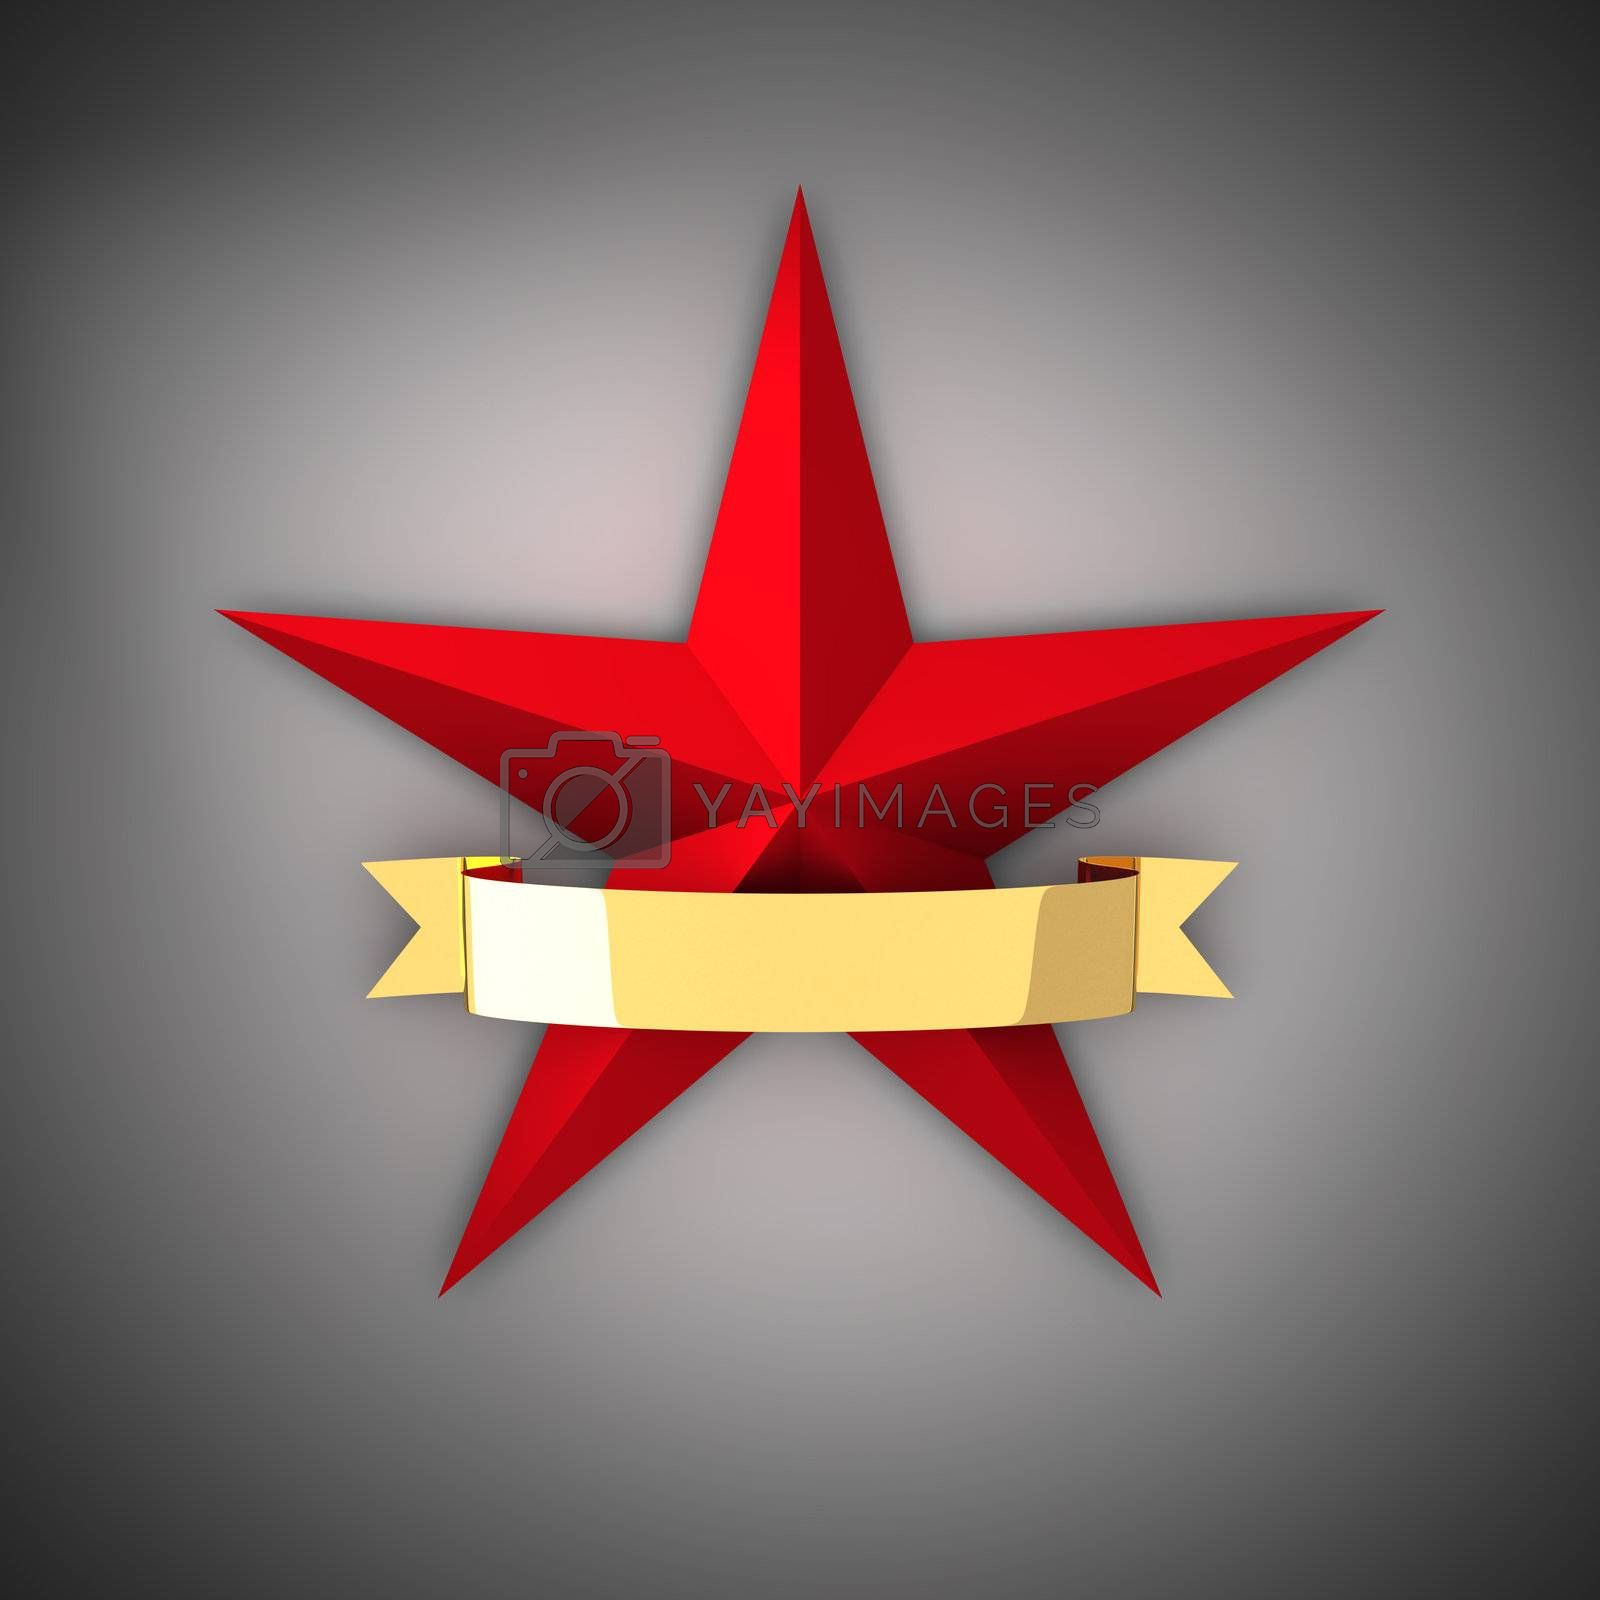 The big red star and gold ribbon